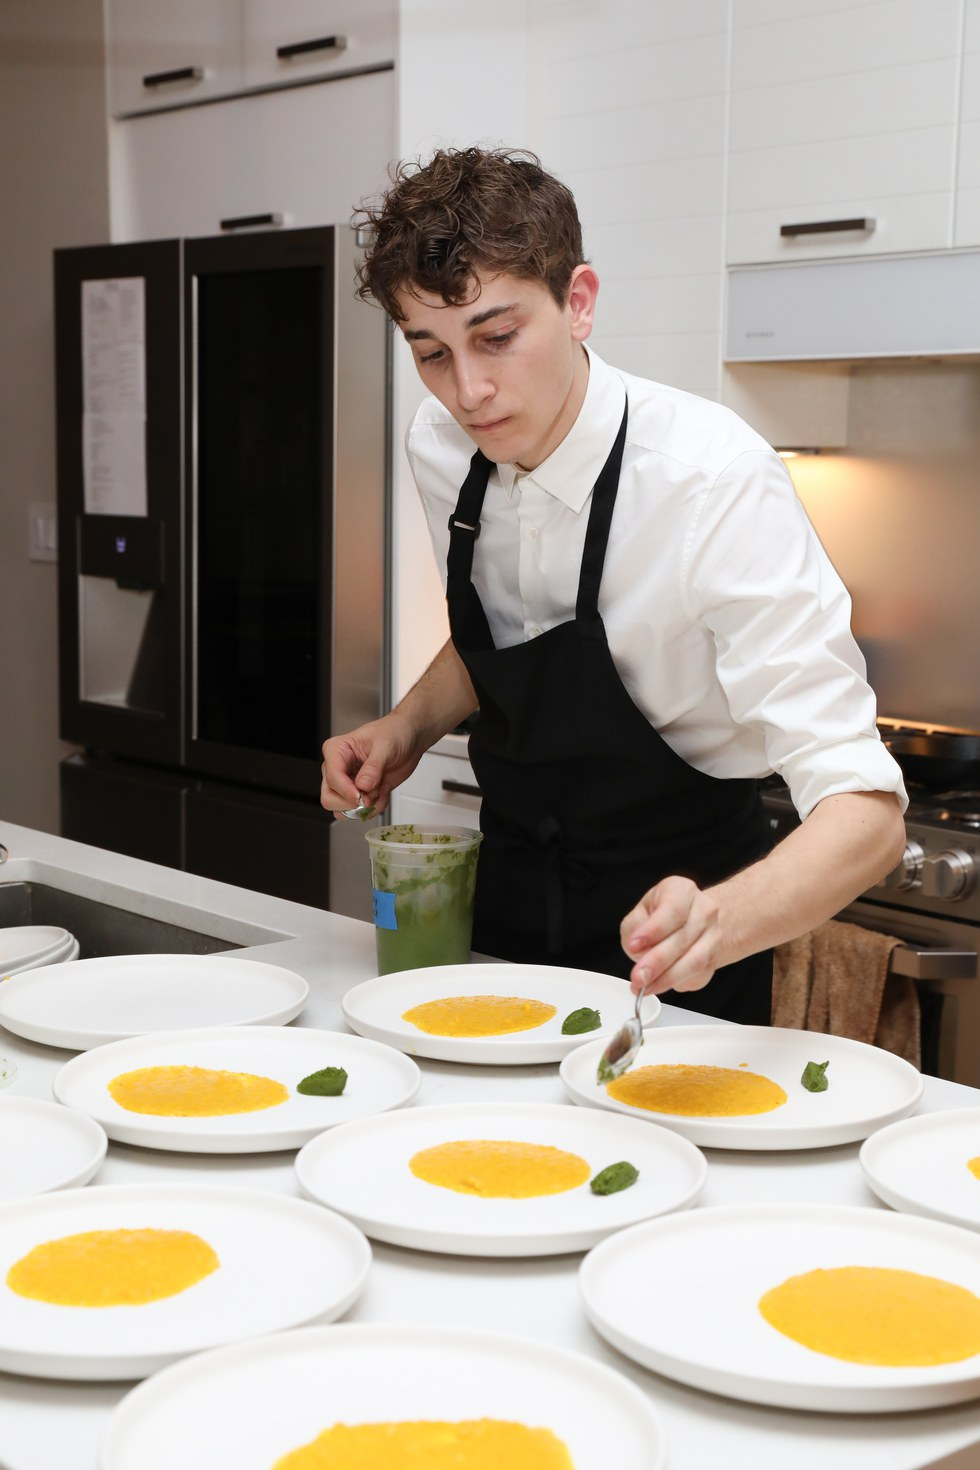 Jonah preparing a signature course at Pith Supper Club with help of LG SIGNATURE